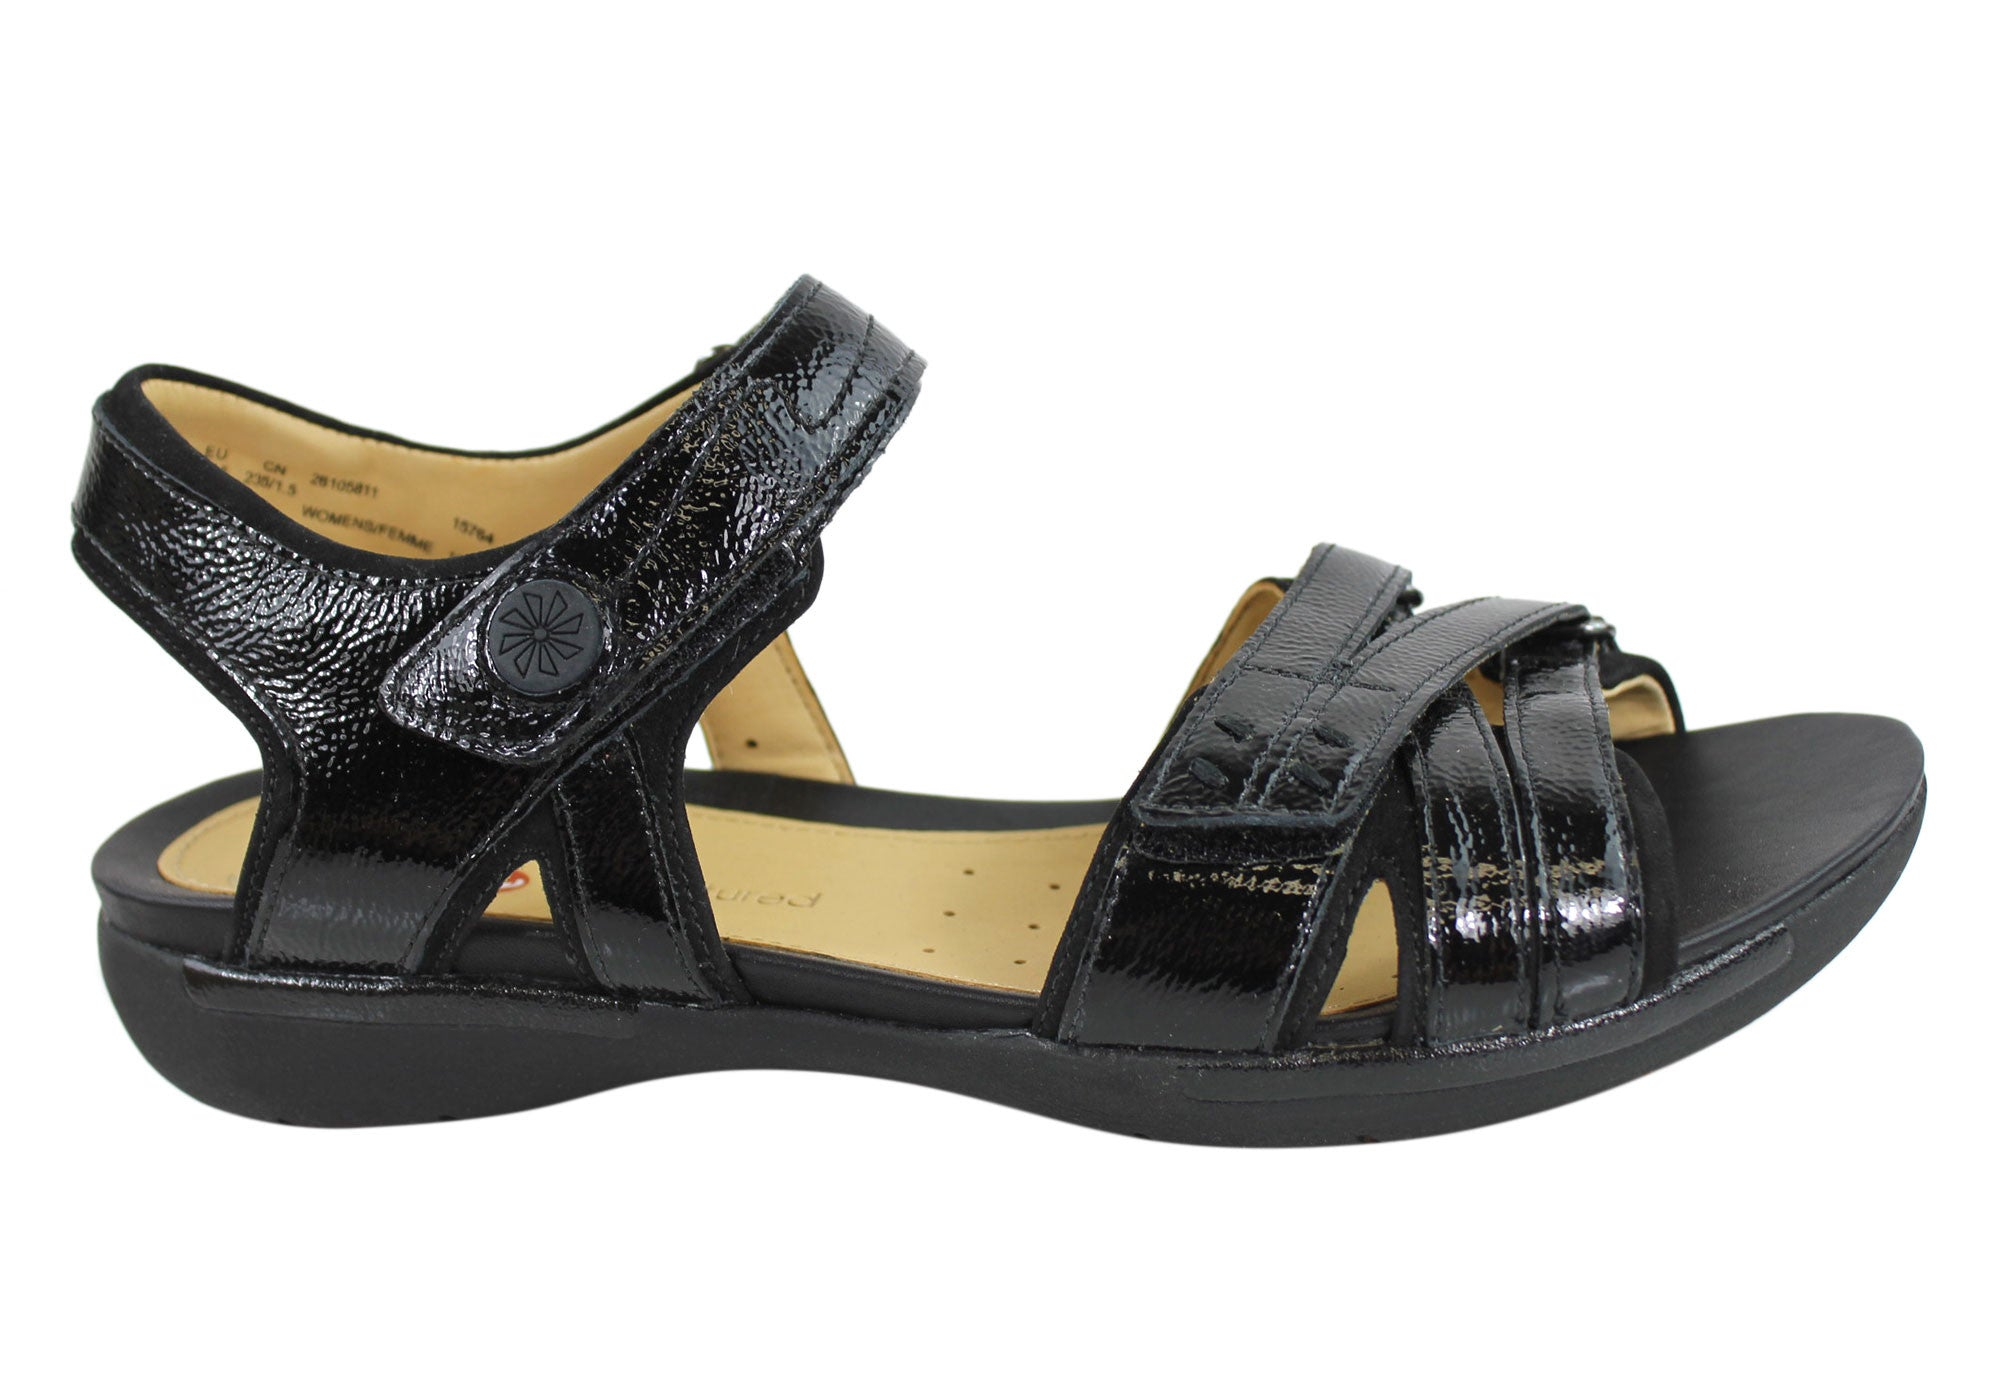 f58fa23f8d5d Home Clarks Un Vasha Womens Leather Comfortable Sandals. Black Patent ...